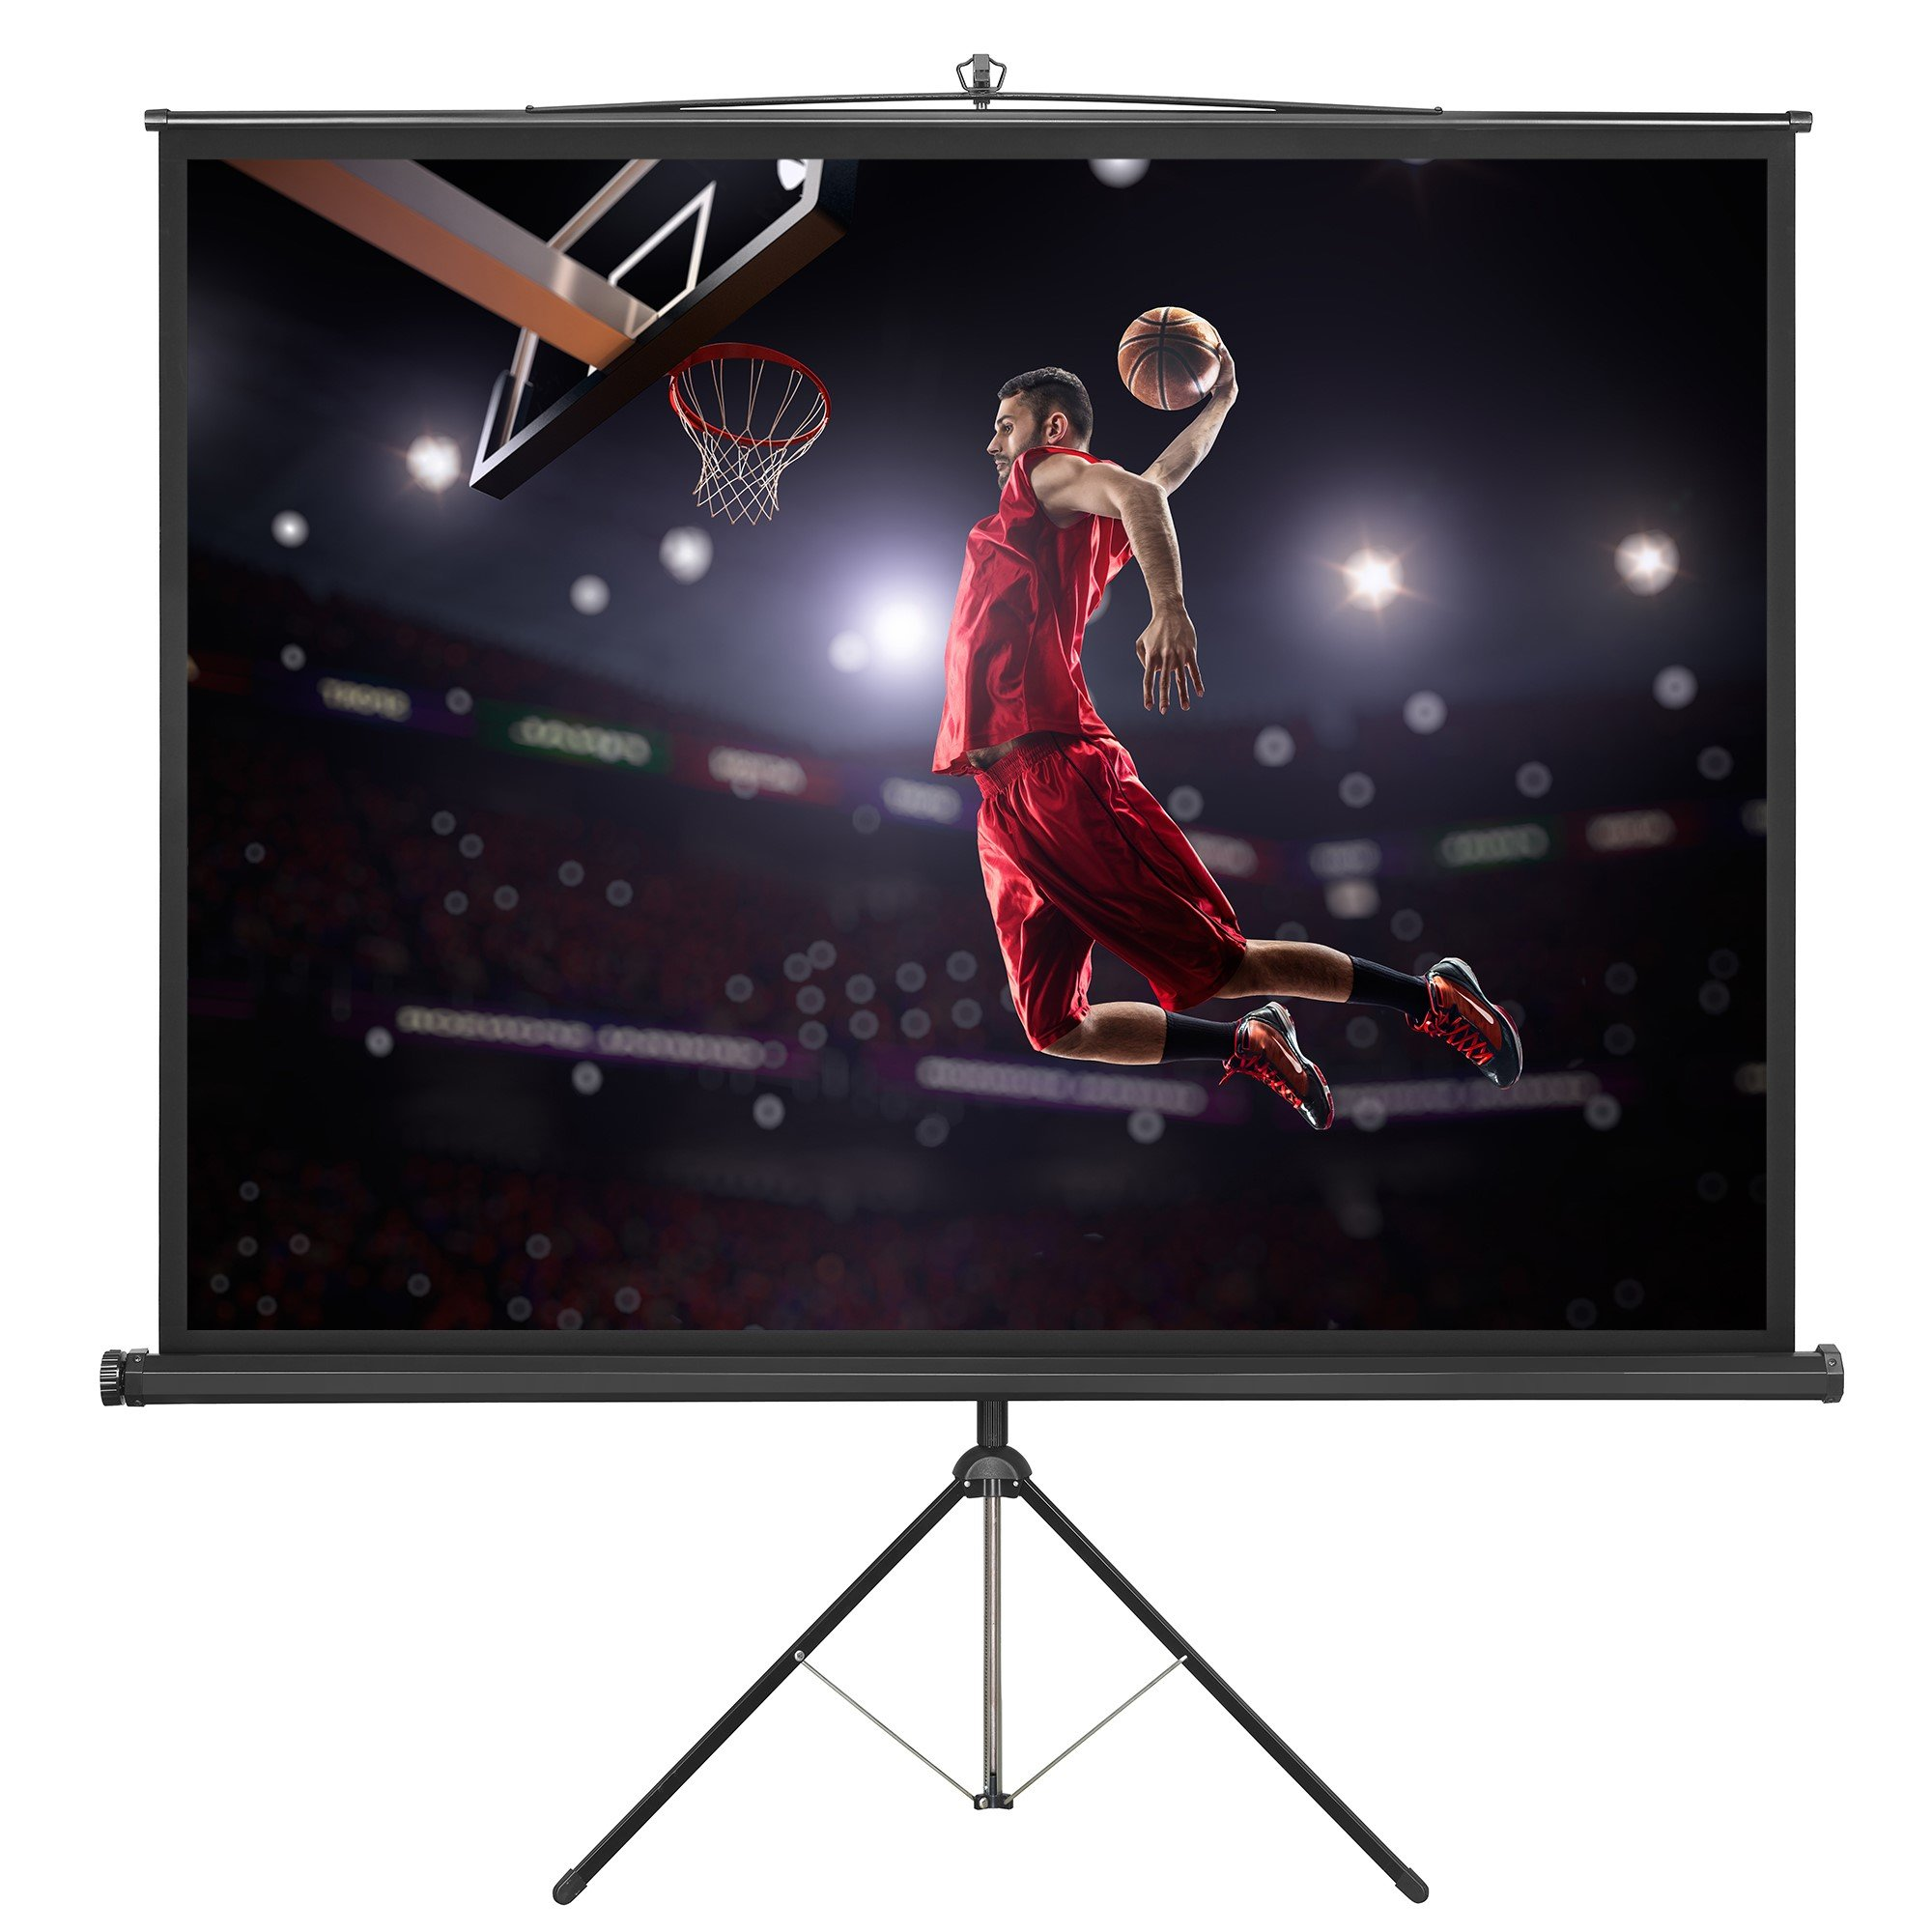 VonHaus 84 Inch Projector Screen - Tripod Included - TV / Home Theater / Movie / Presentation Platform - 4:3 Aspect Ratio Indoor Portable Projection Screen - Suitable for LED, LCD and DLP Projectors